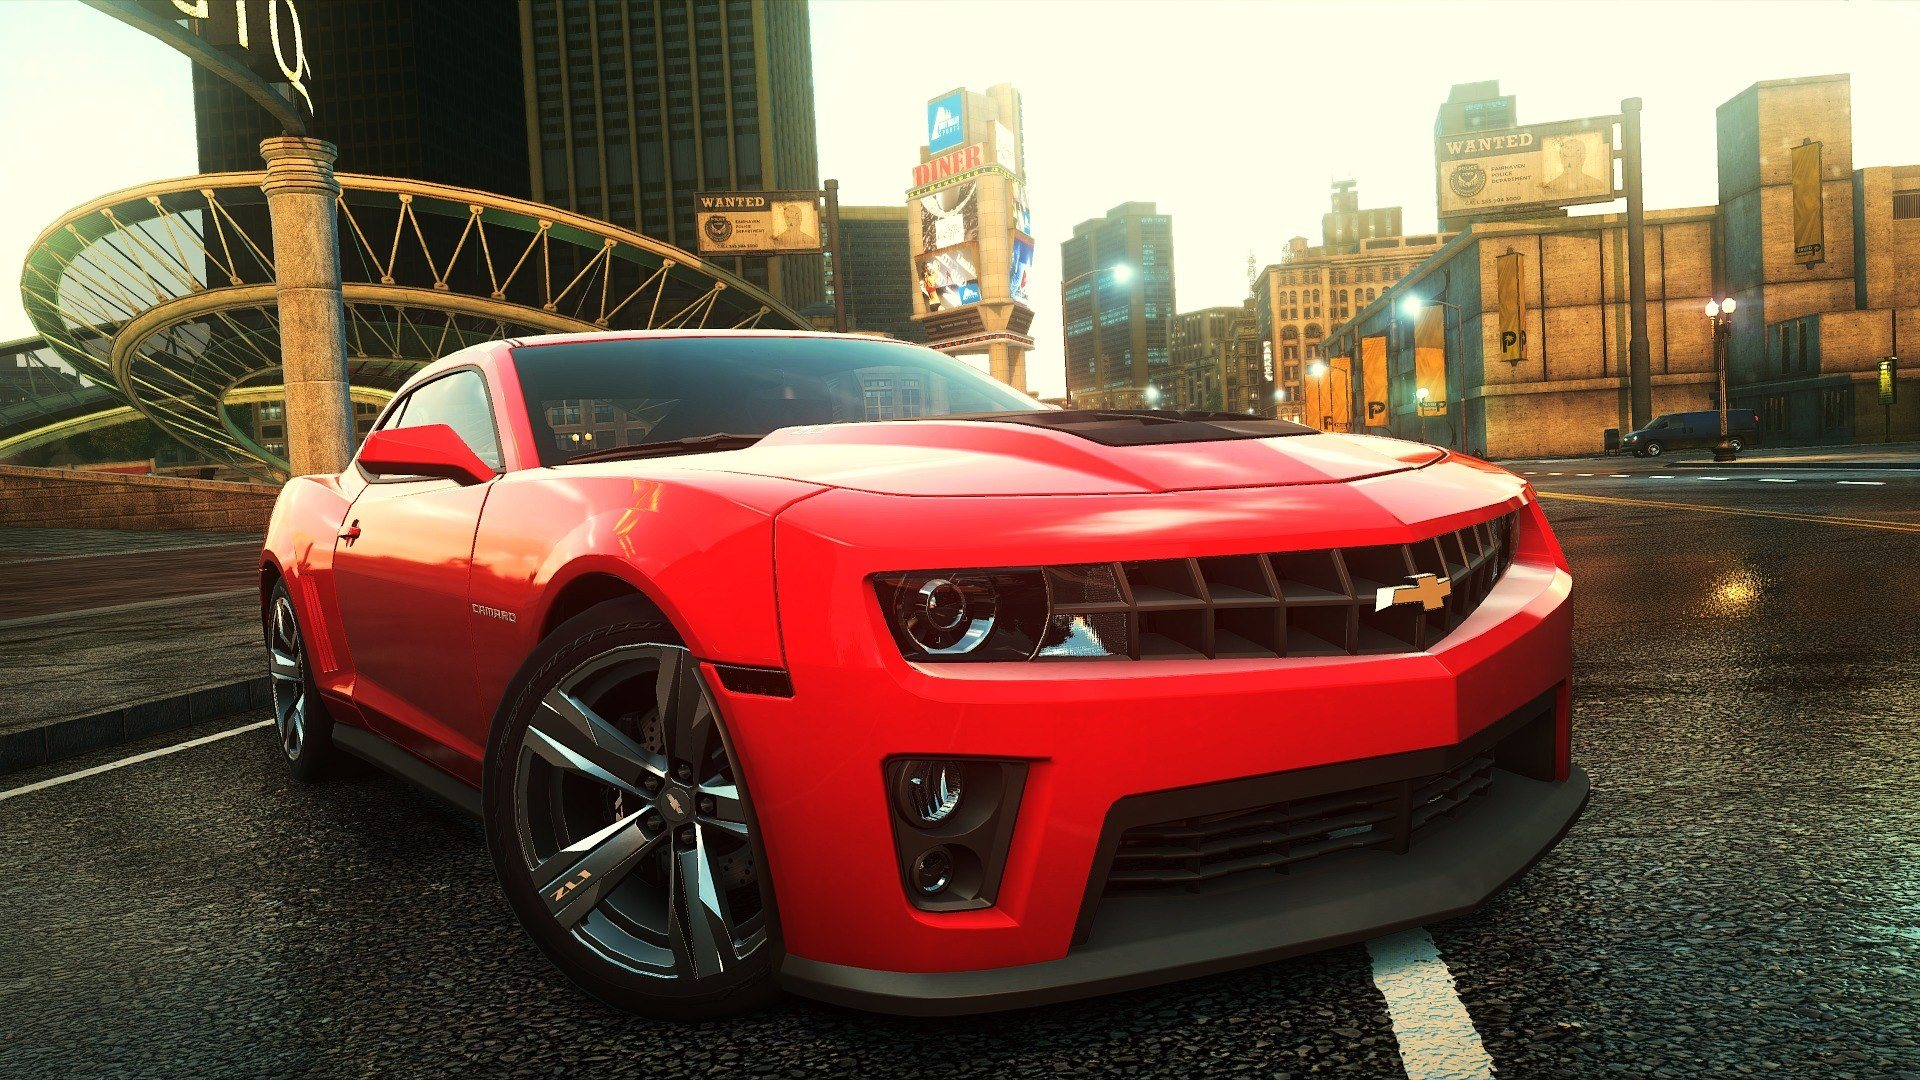 Красный Chevrolet Camaro ZL1, Шевроле Камаро, NFS Most Wanted, Need for Speed, 2012, диски, фары, игра, город, улица